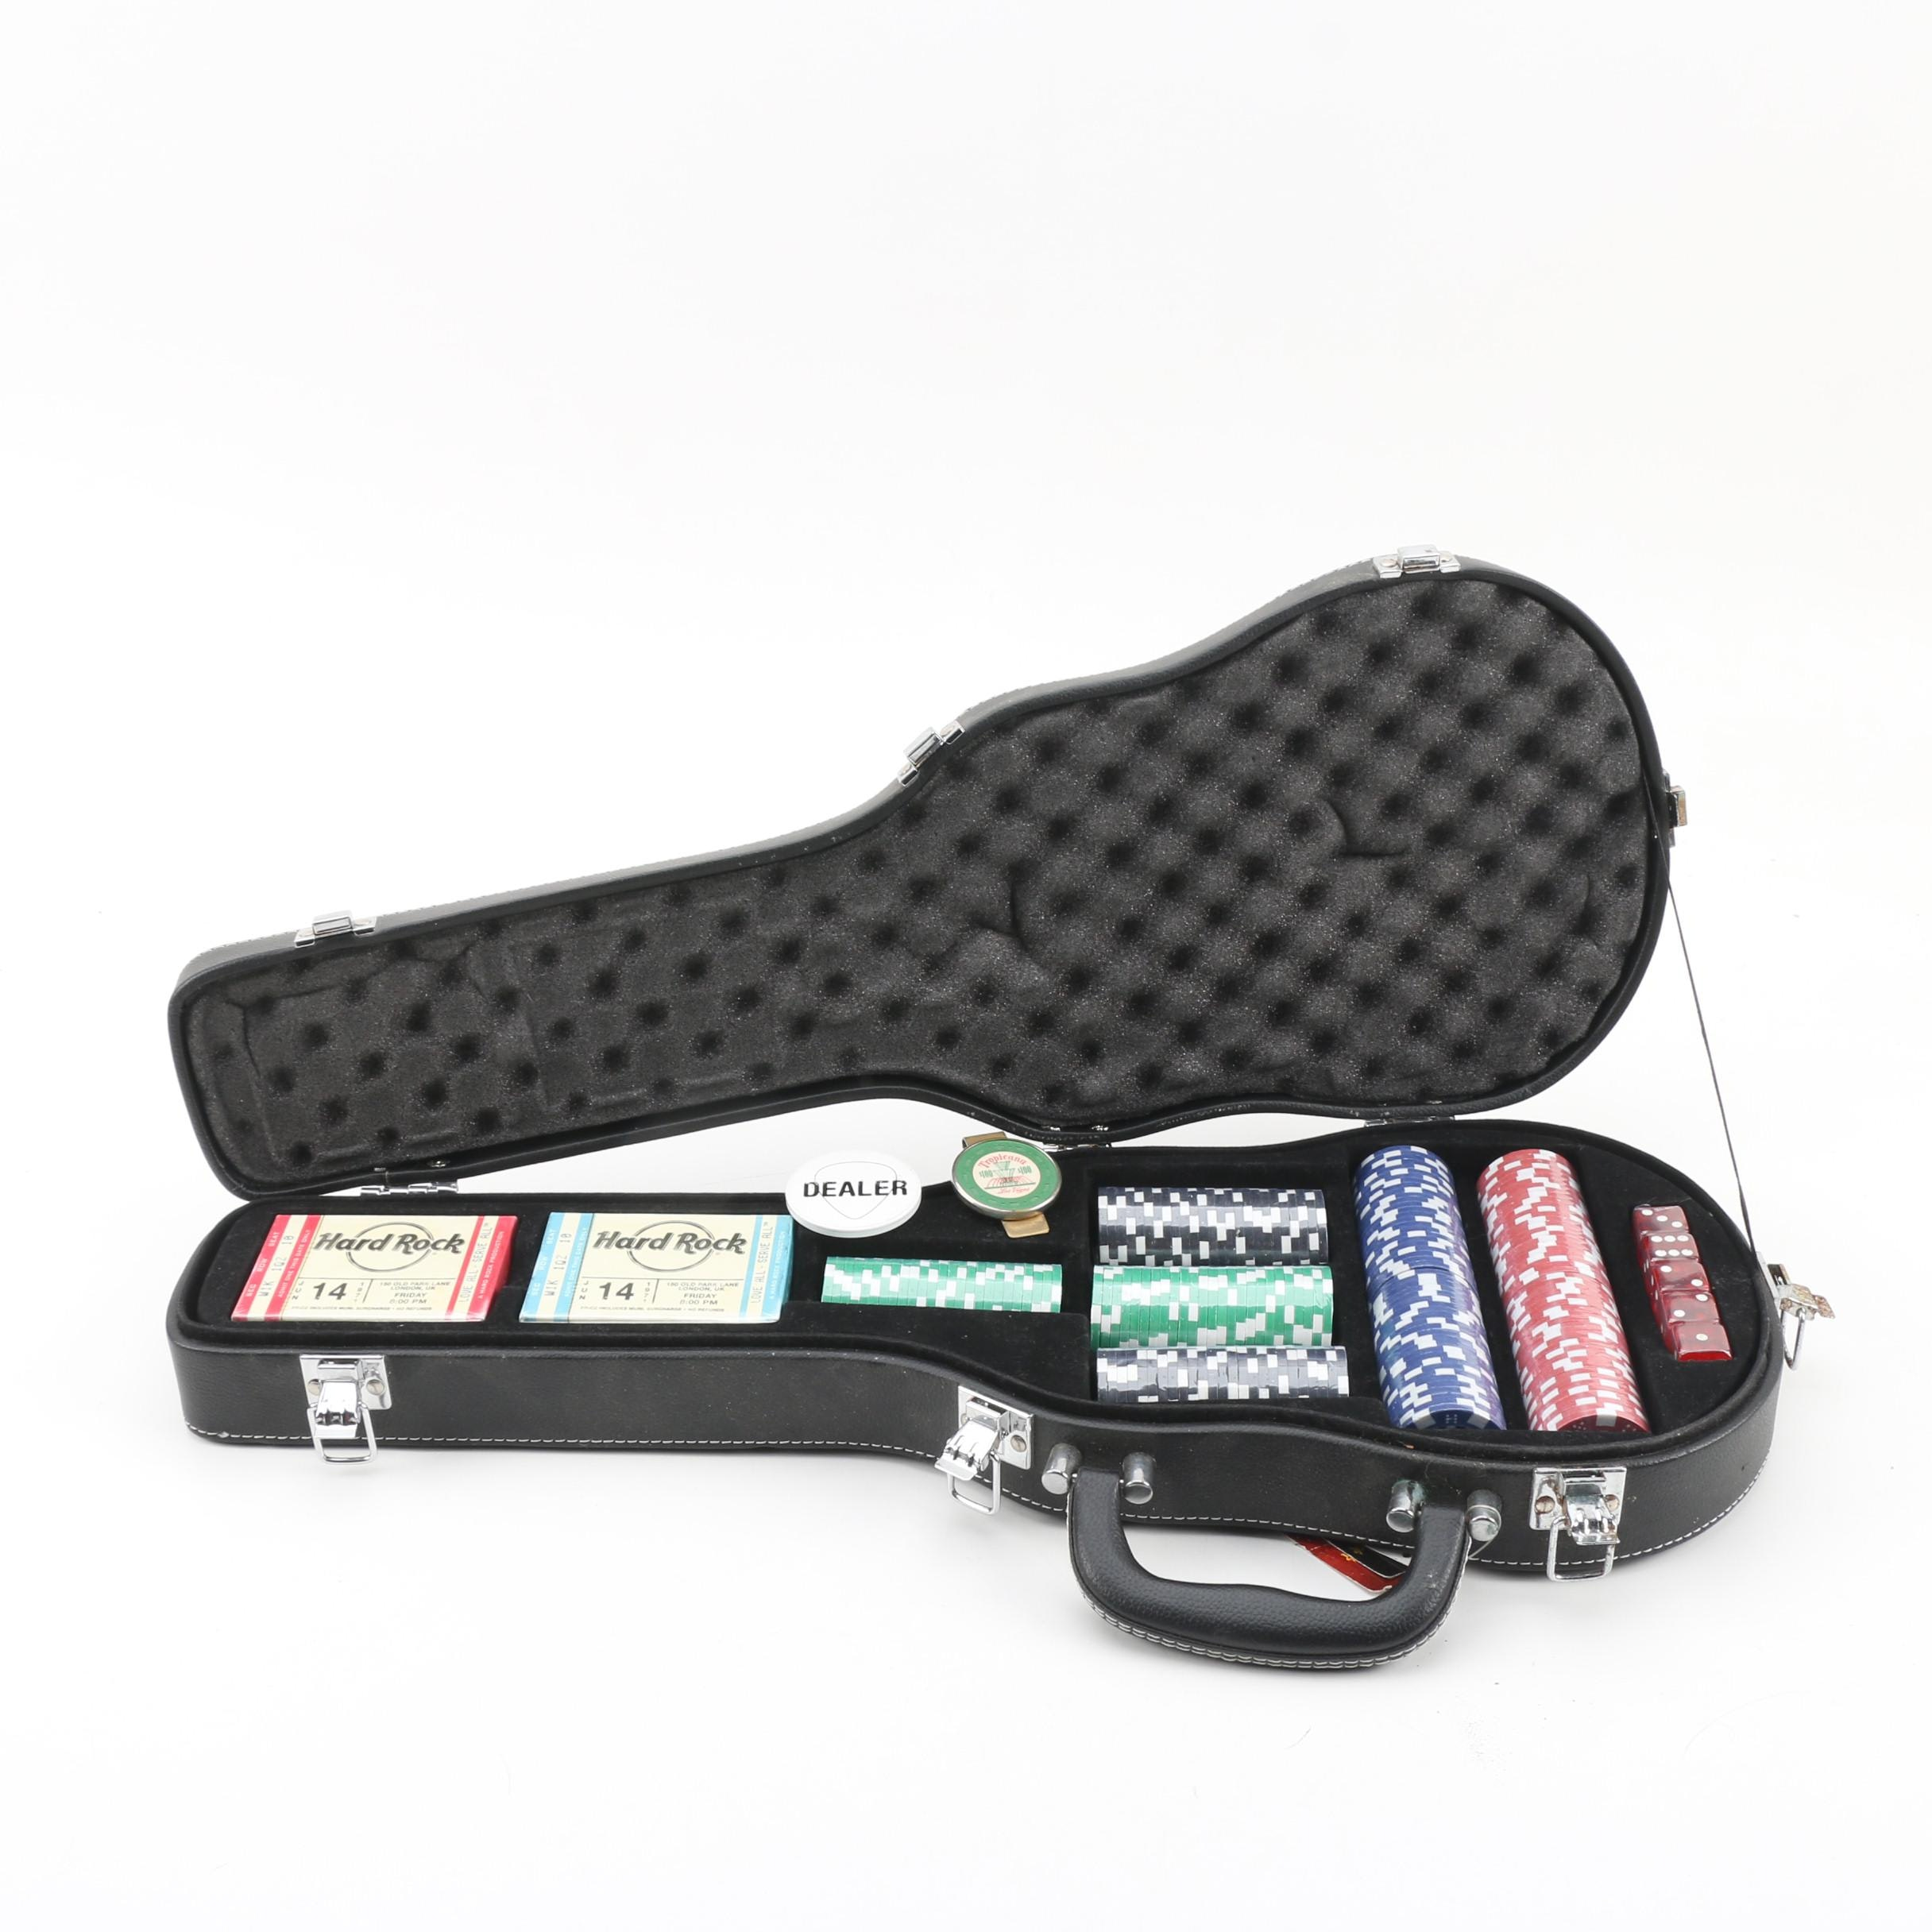 Hard Rock Cafe Poker Set in Small Guitar Case